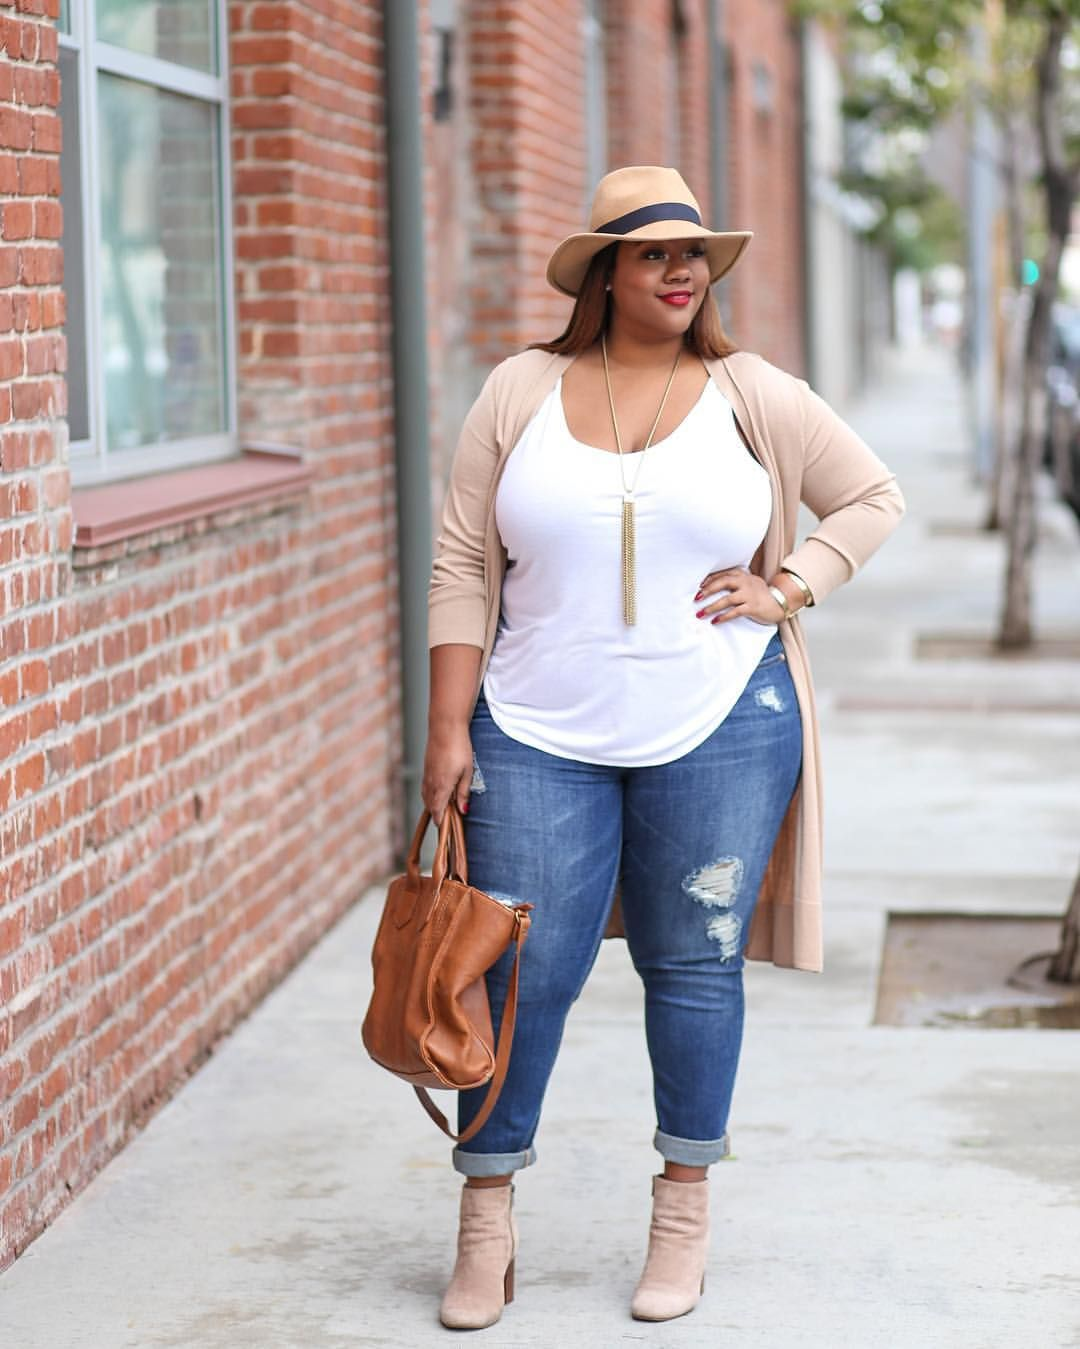 f3a58c431b8 Plus size Weekend casual - full figure fashion | Clothes for the FLY ...